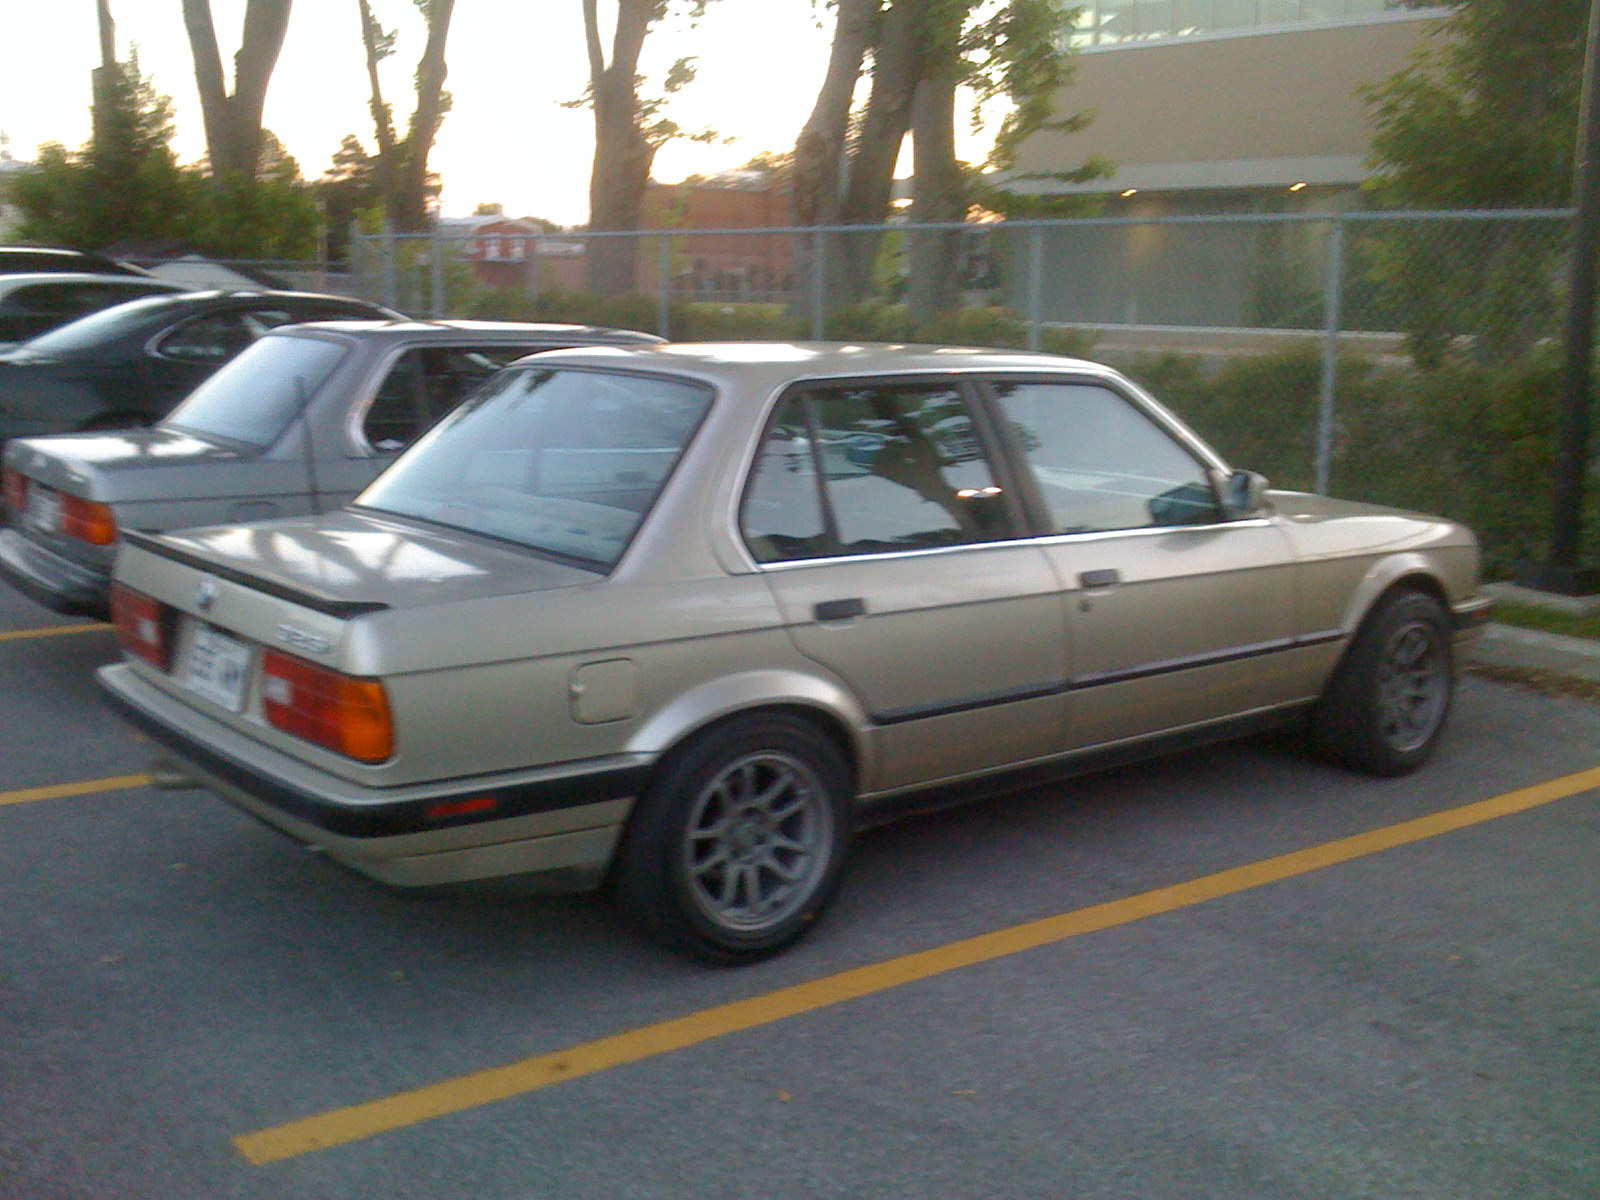 BMW 3 series 325e 1990 photo - 10